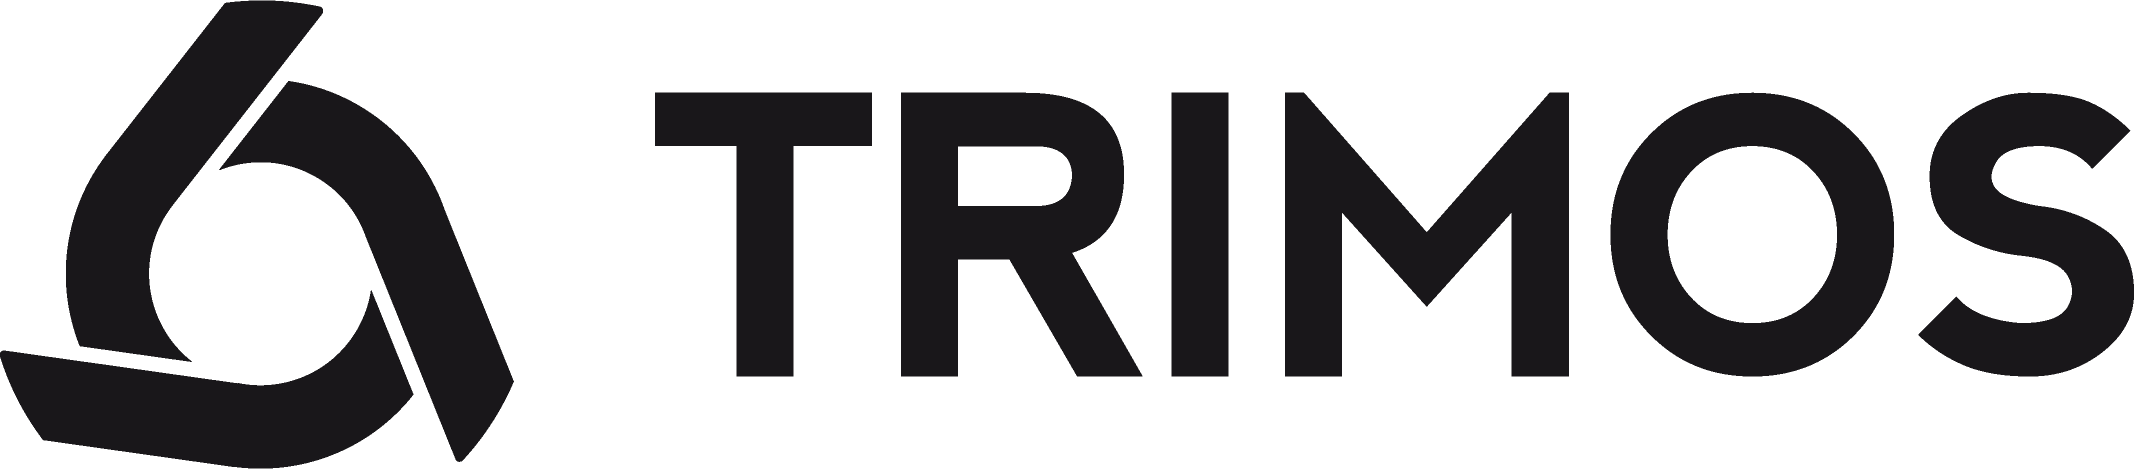 article 66-TRIMOS-LOGO-Horizontal